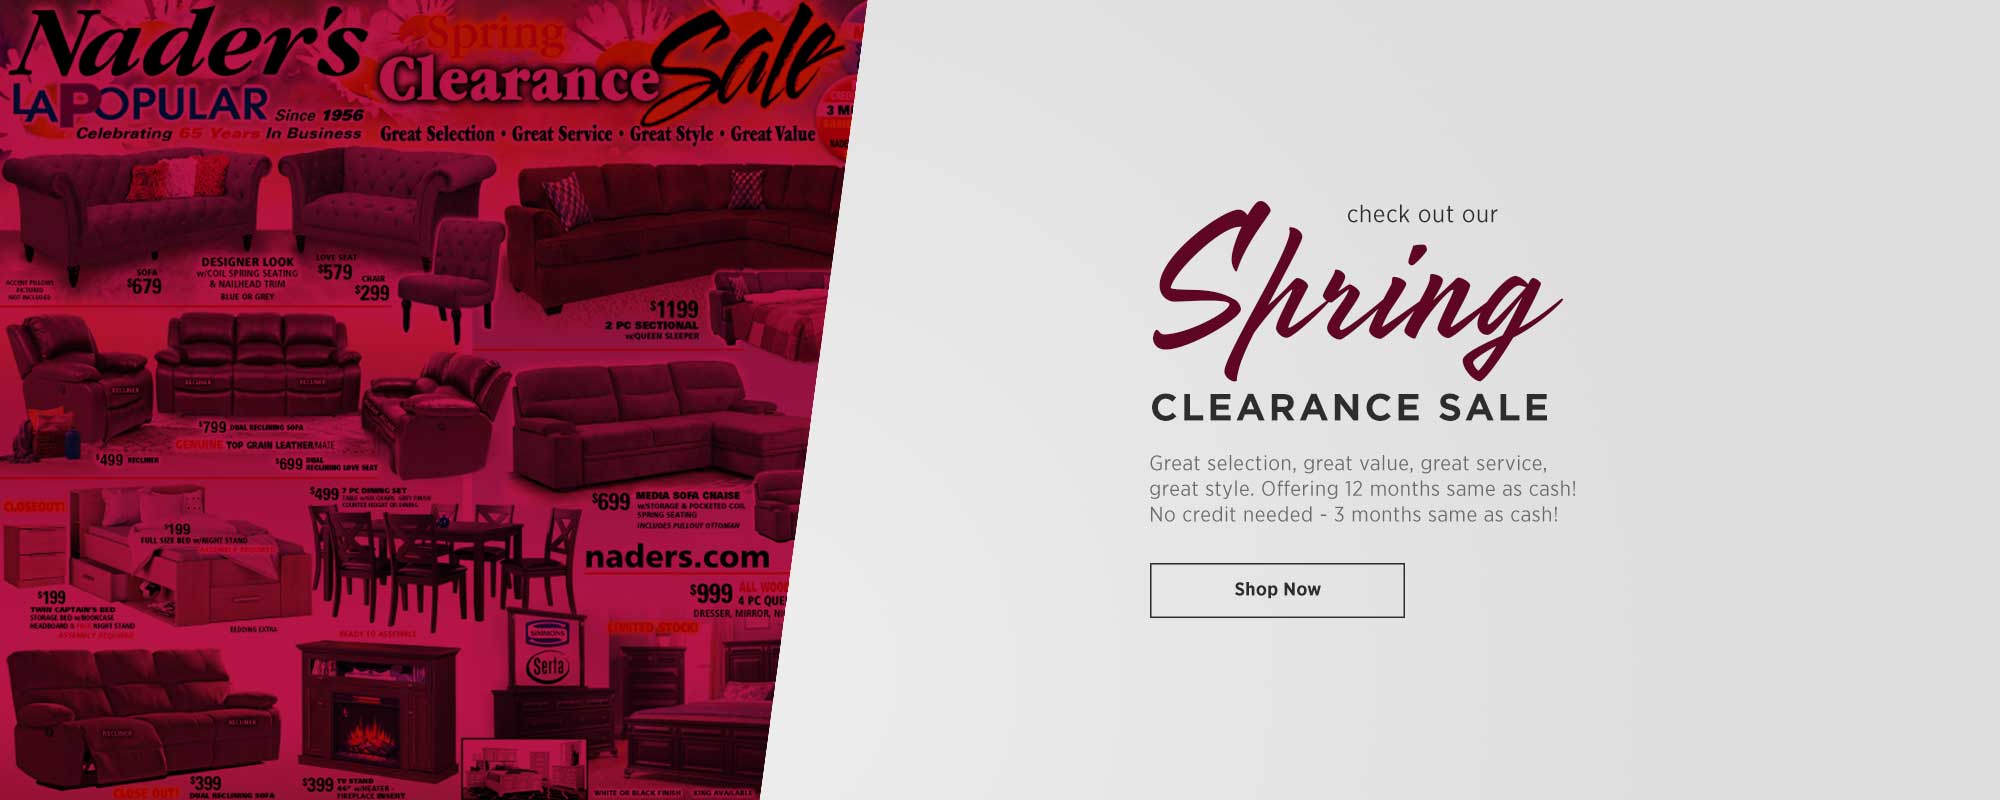 Spring Clearance Sale - View Ad